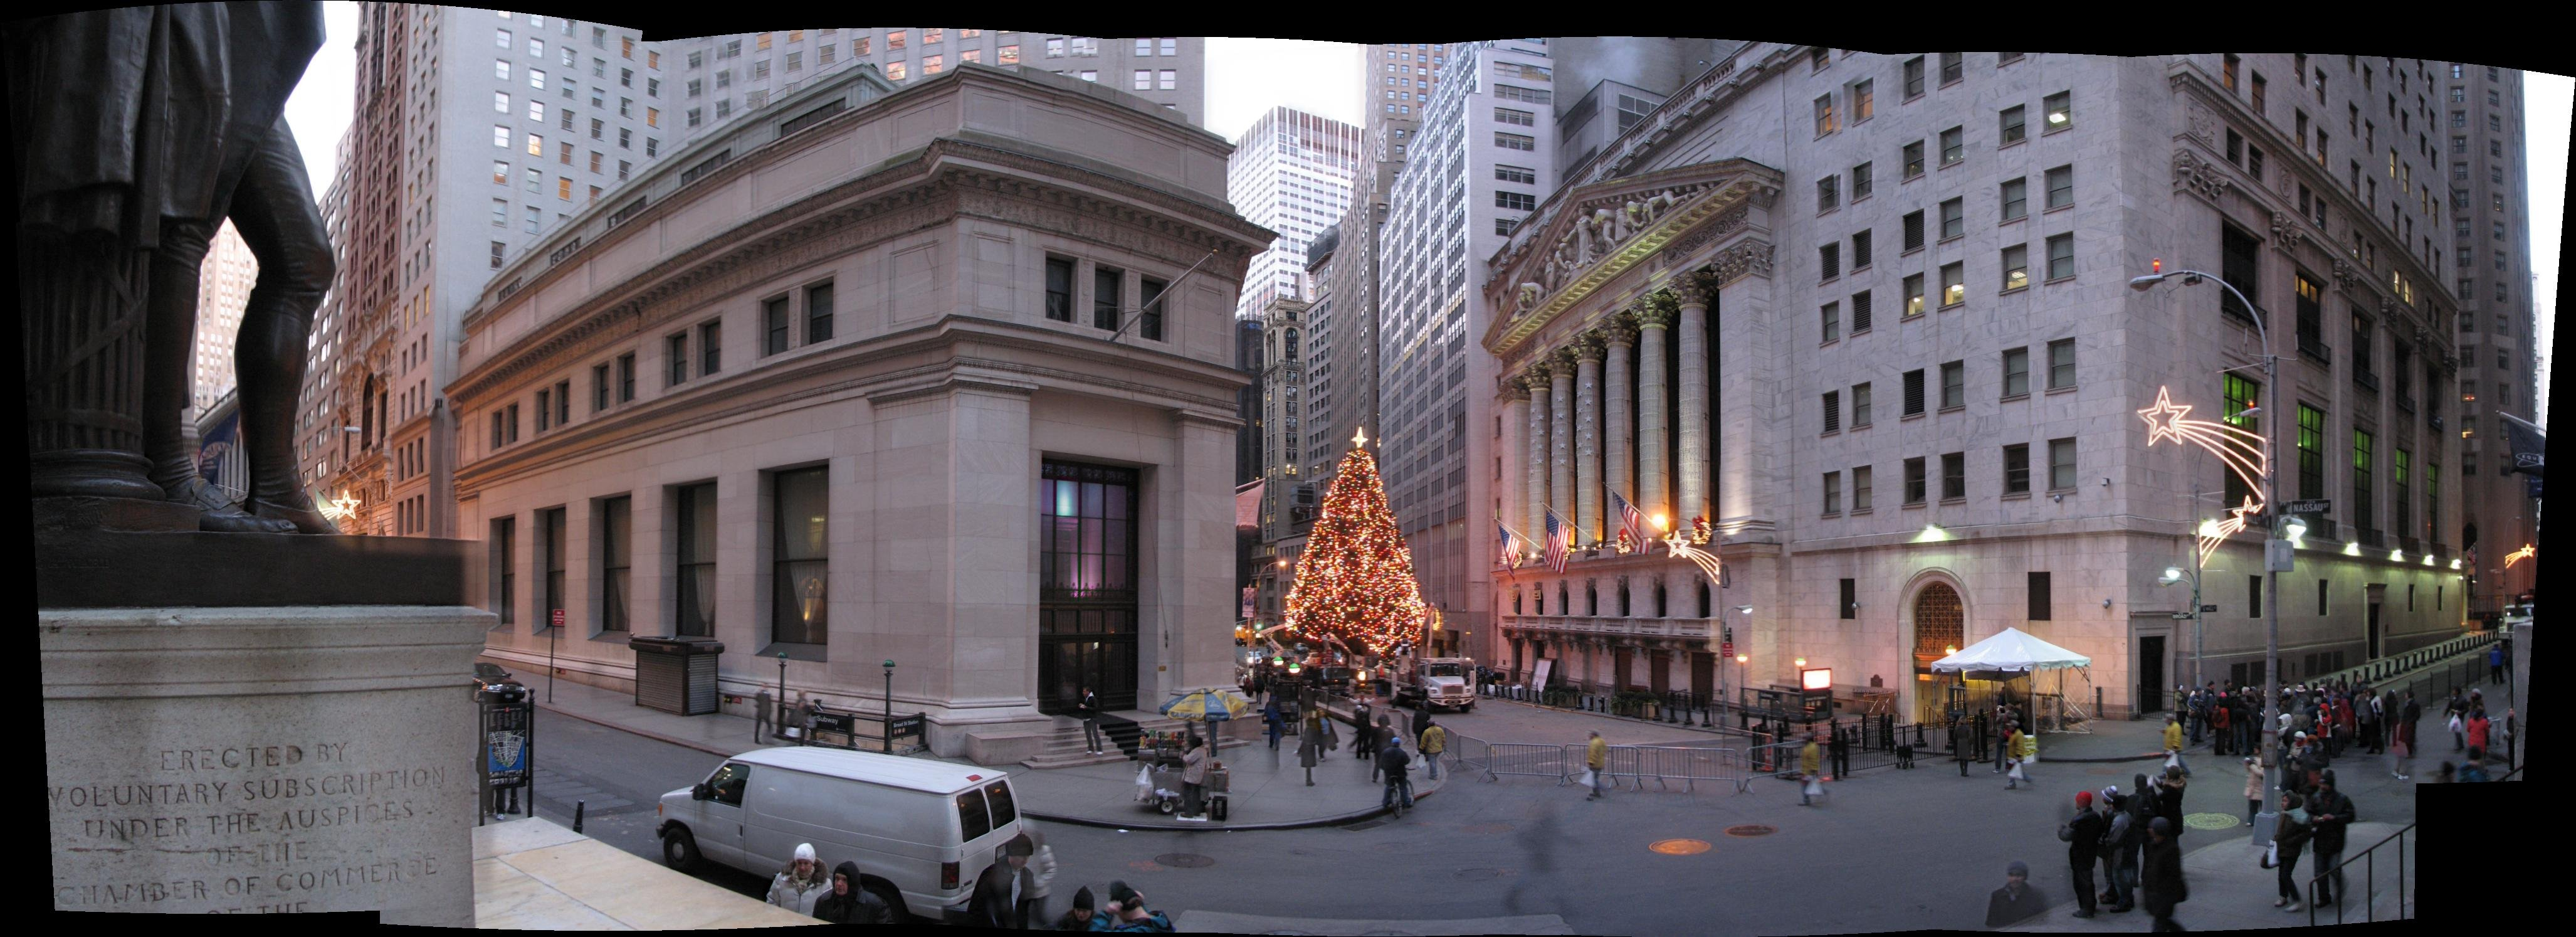 Another Wall Street Historic District Panorama Flickr